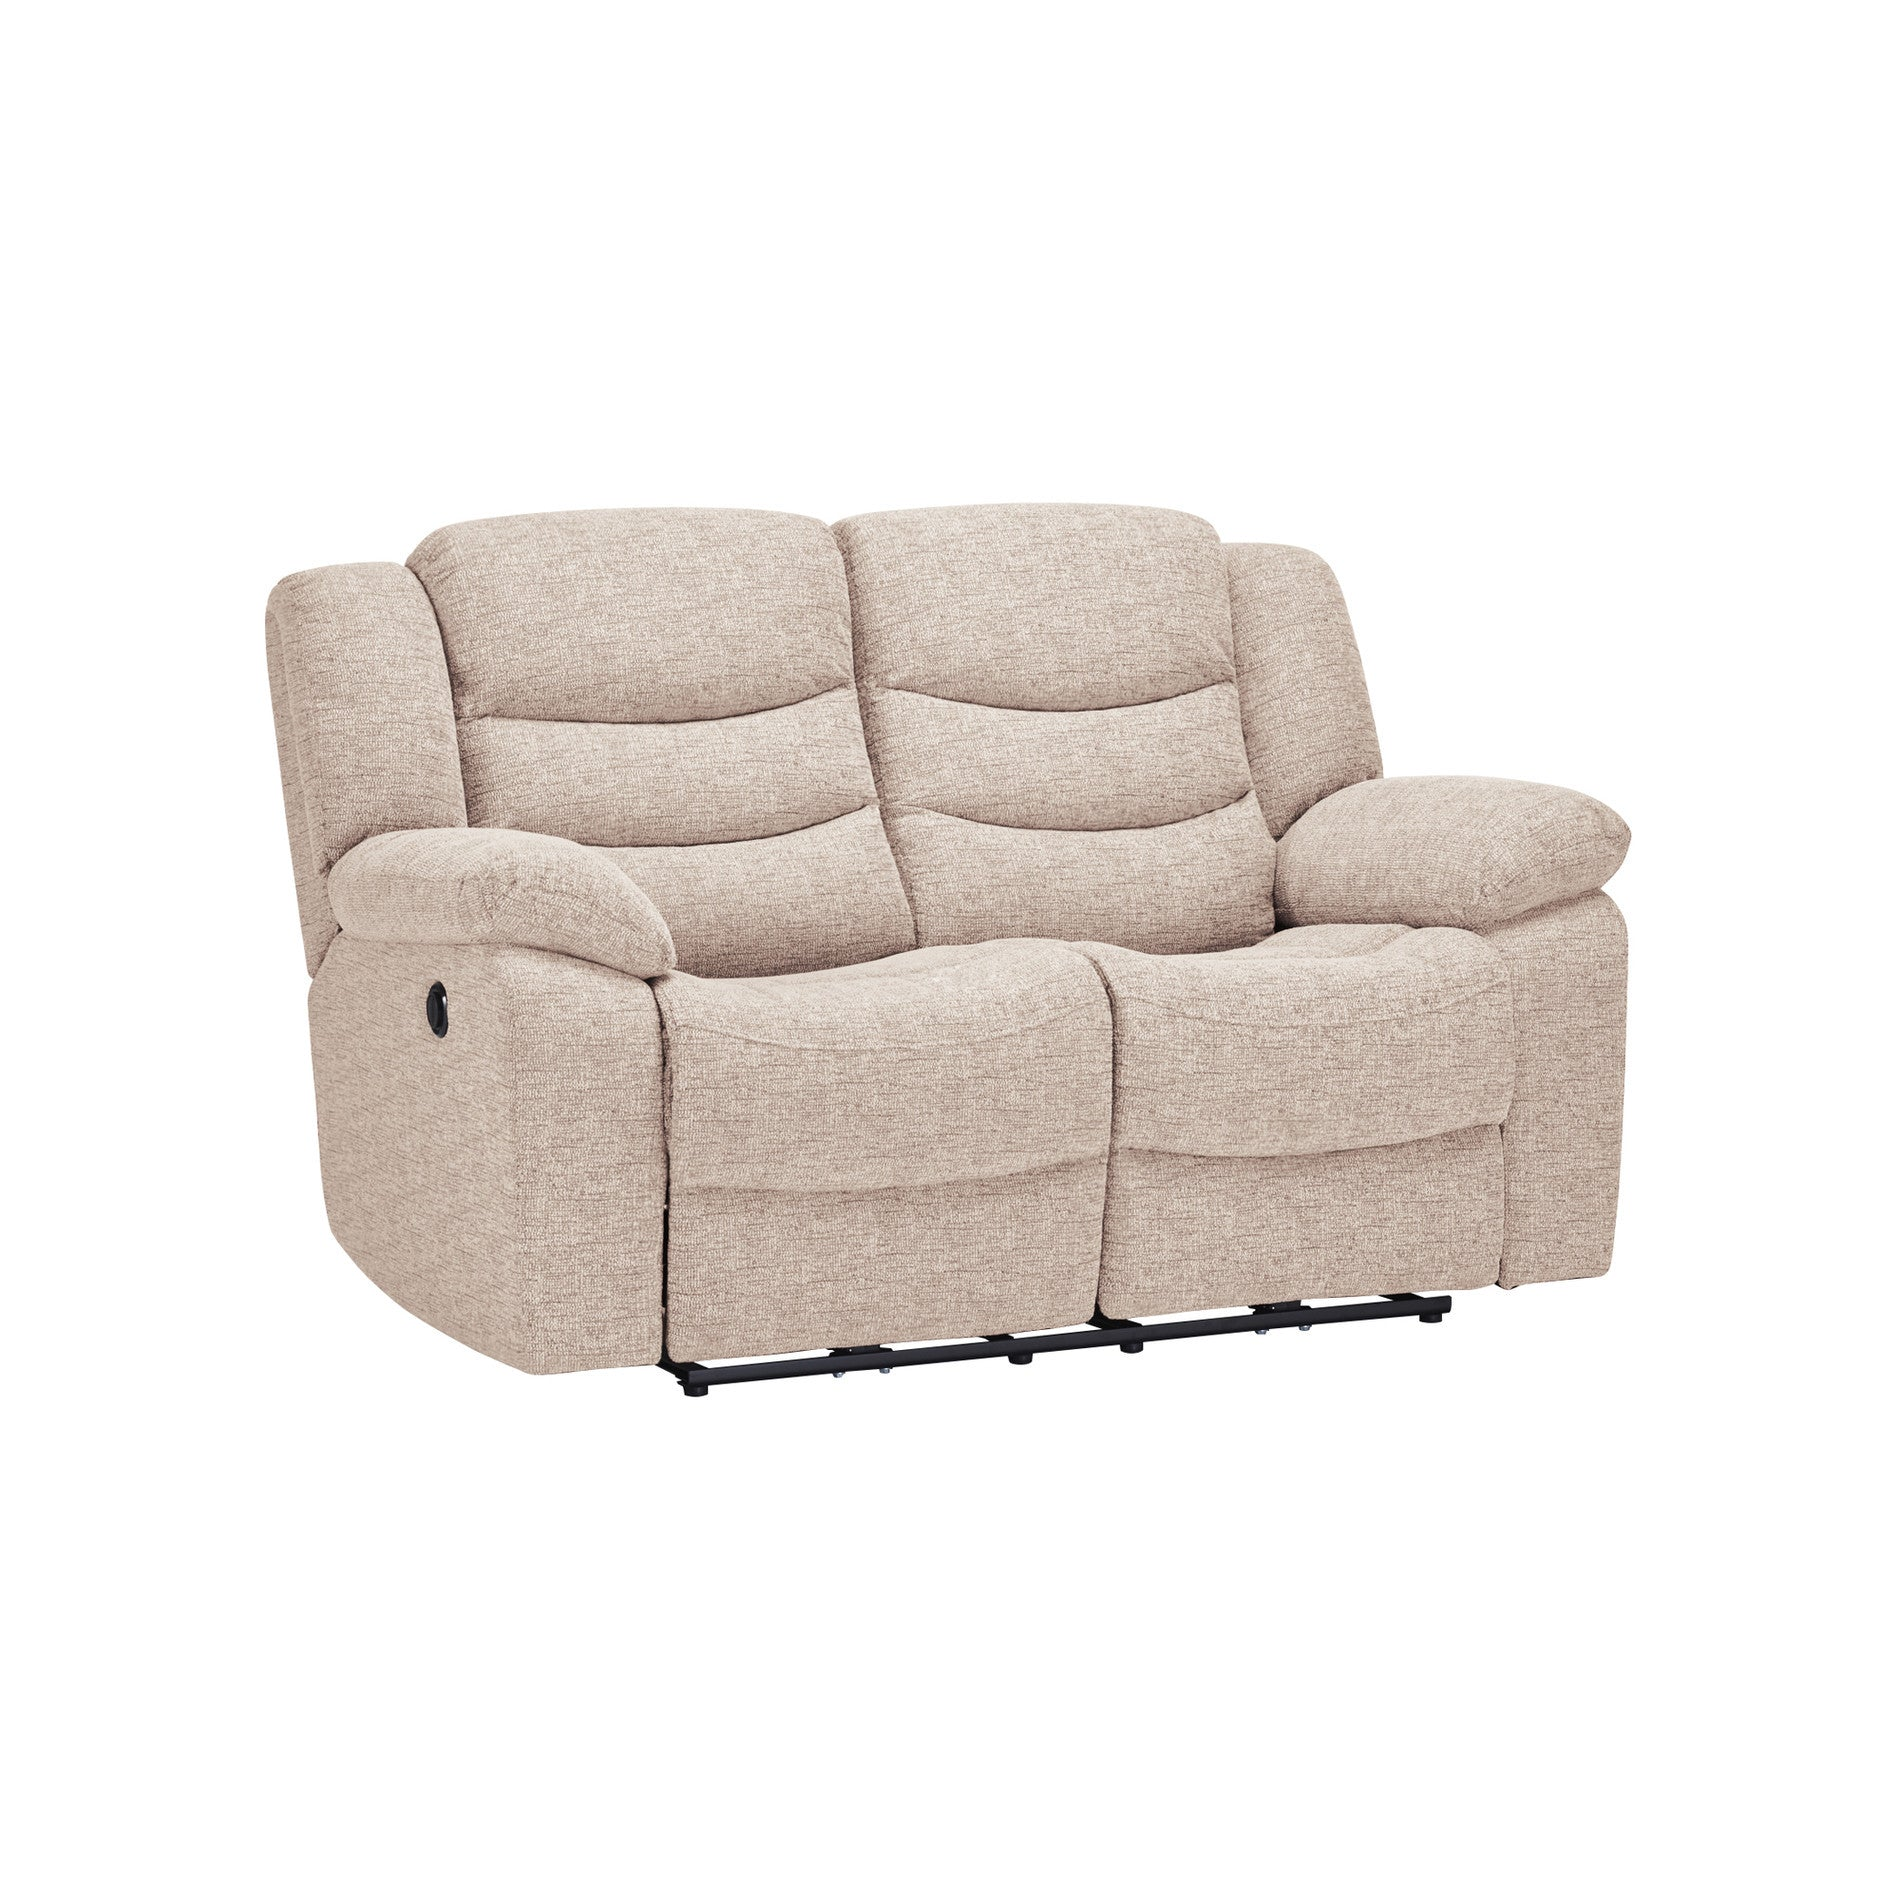 Grayson 2 Seater Electric Recliner Sofa - Oatmeal Fabric  sc 1 st  Sofa Store Spain - Shopify & Grayson 2 Seater Electric Recliner Sofa - Oatmeal Fabric \u2013 Sofa ... islam-shia.org